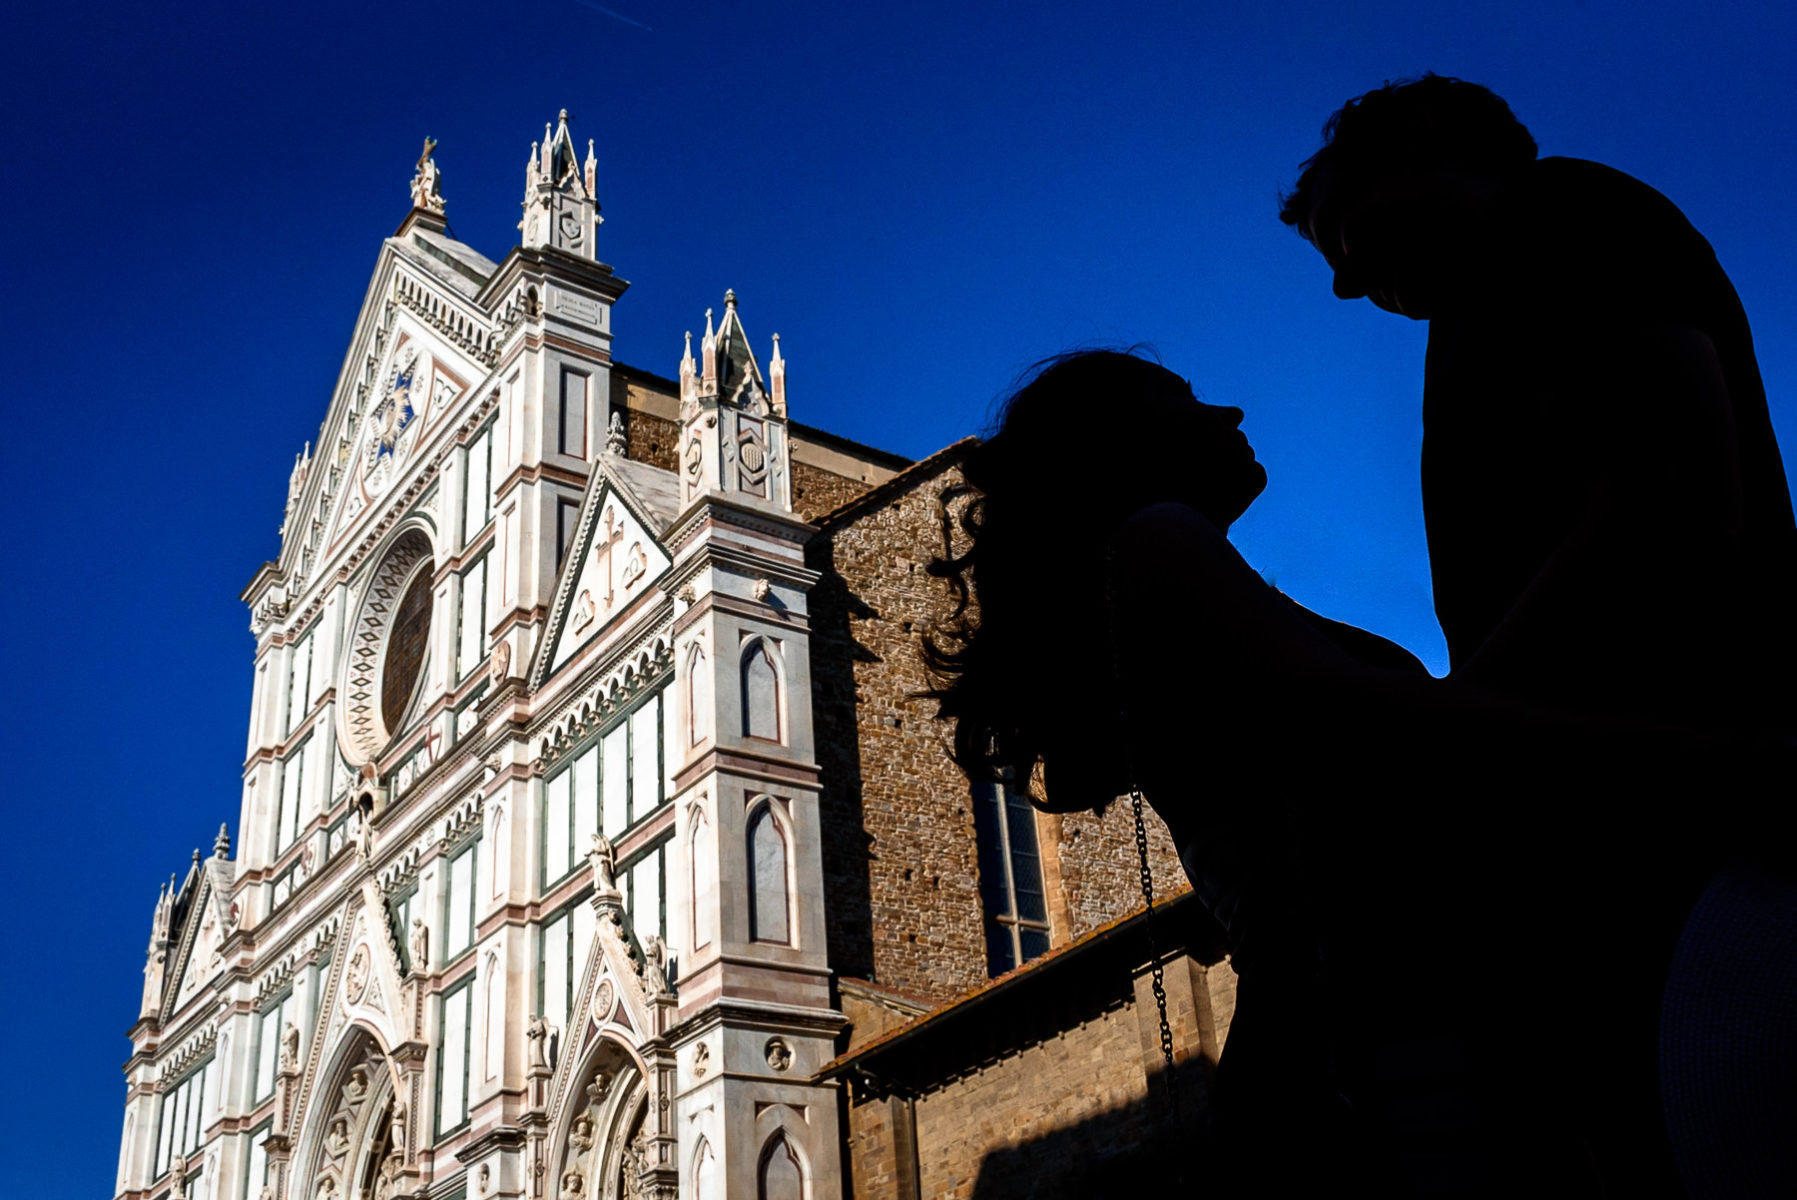 silhouette in front of Basilica di Santa Croce engagement photo